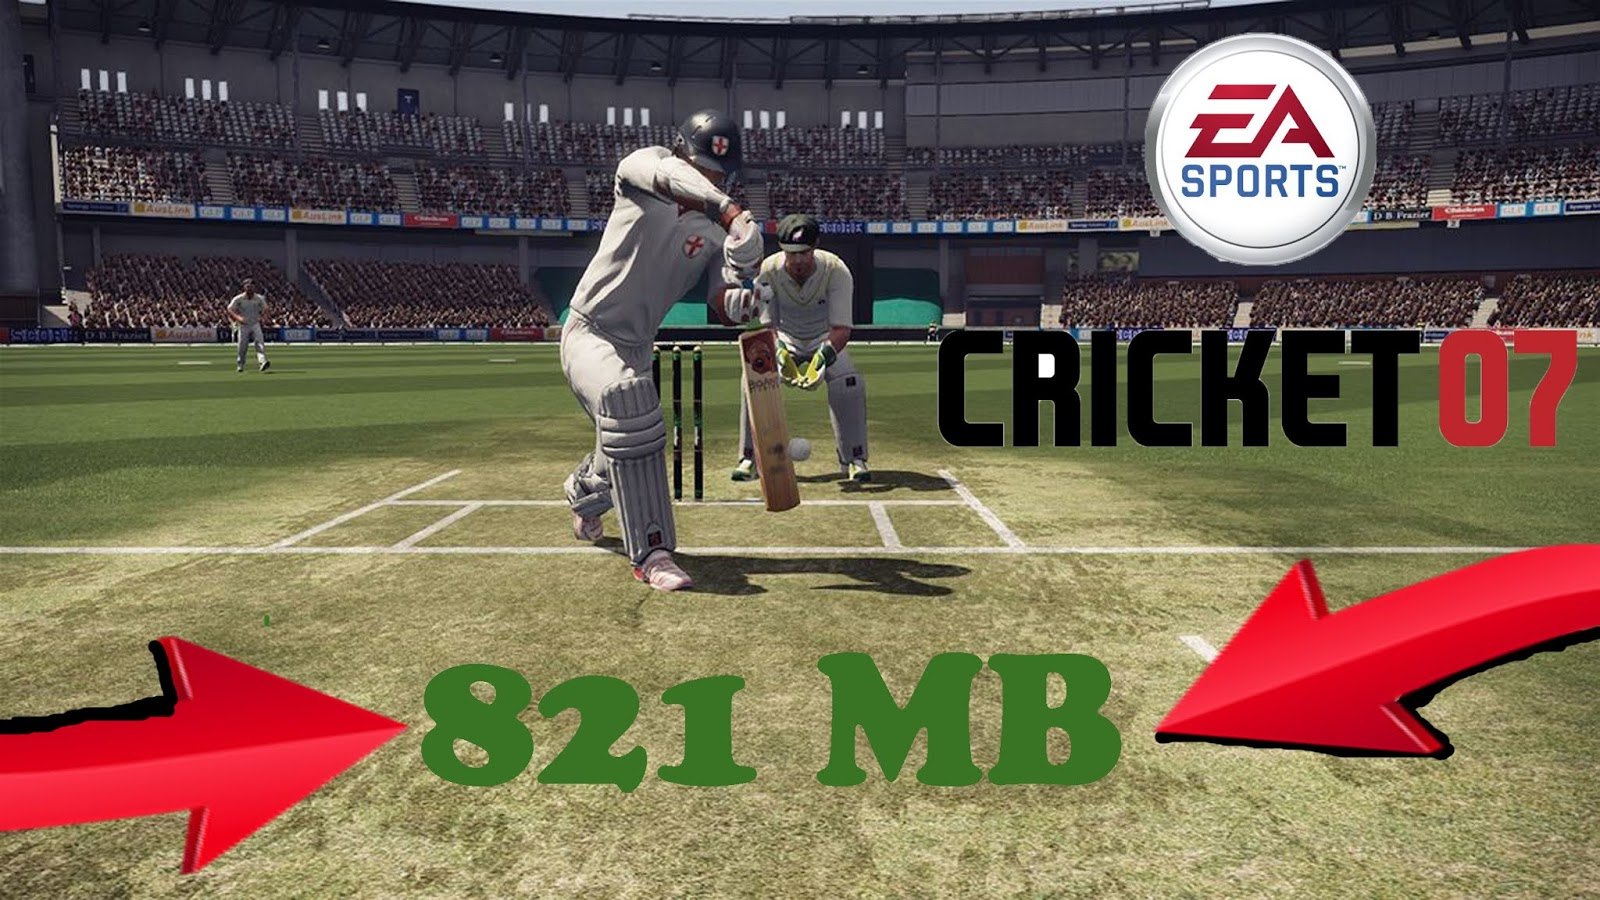 pc cricket game low mb download